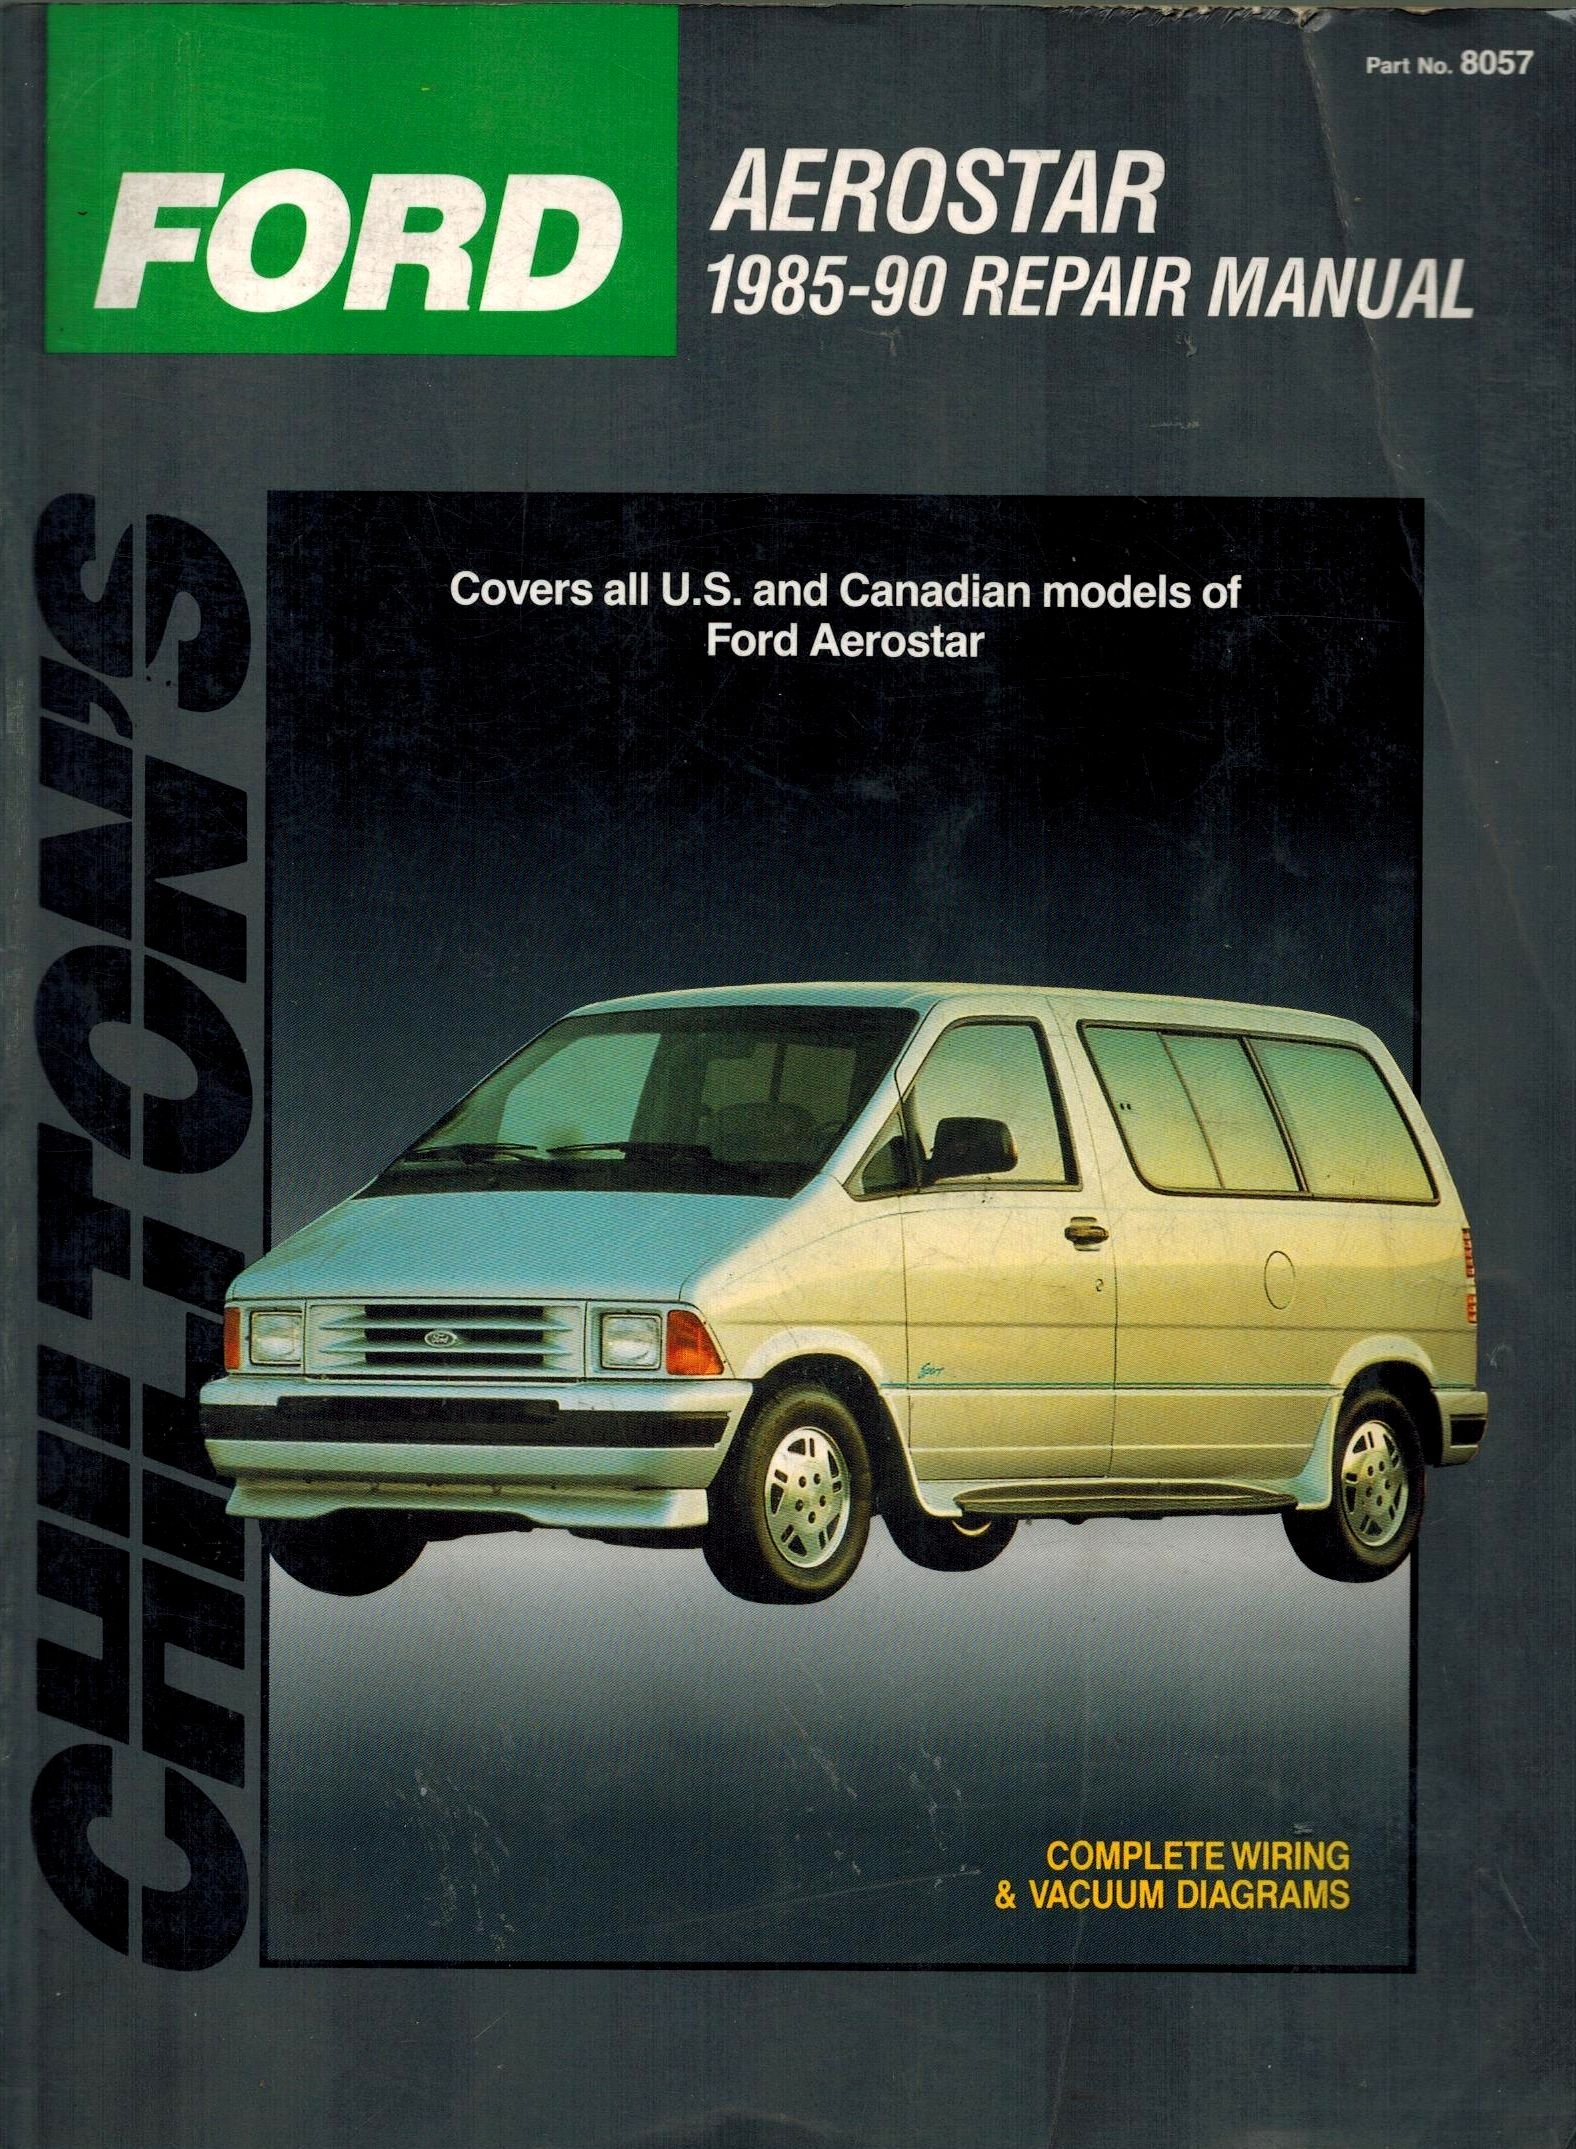 Ford Aerostar 1985 1990 Repair Manual Chilton Books Engine Diagram